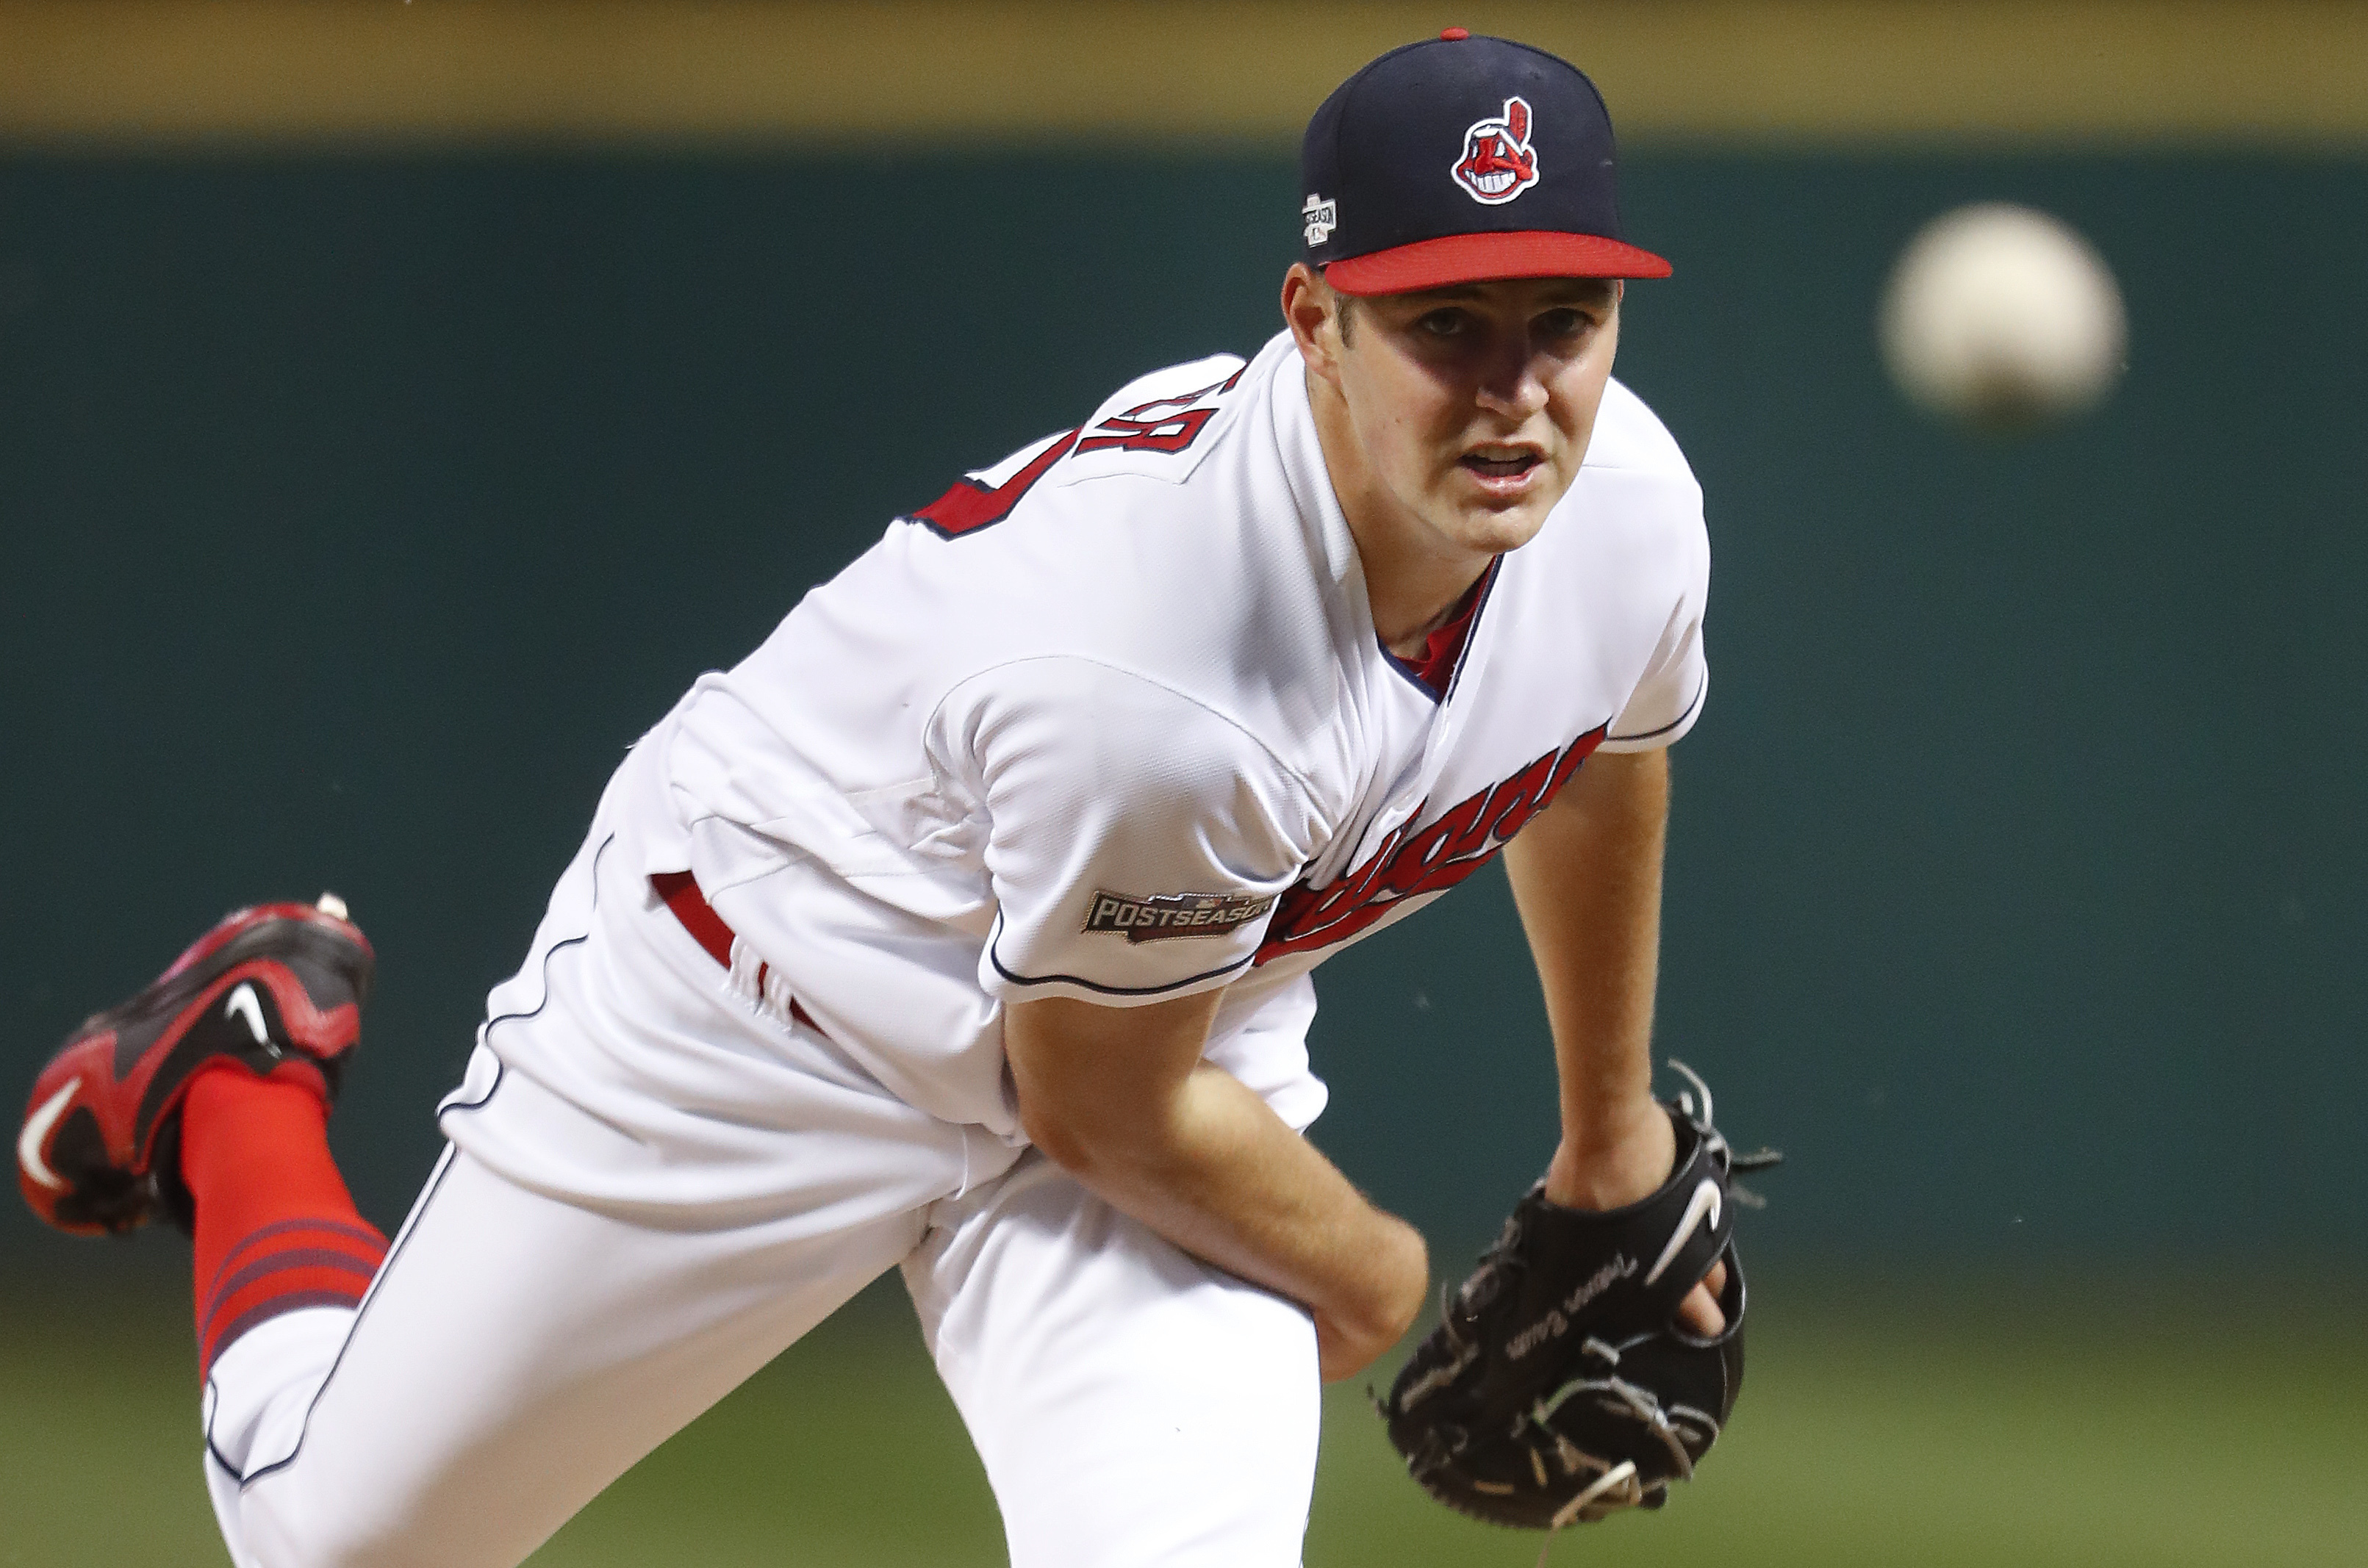 FILE - In this Oct. 6, 2016, file photo, Cleveland Indians pitcher Trevor Bauer throws against the Boston Red Sox in the first inning during Game 1 of baseball's American League Division Series in Cleveland.  Manager Terry Francona said Wednesday he'll st